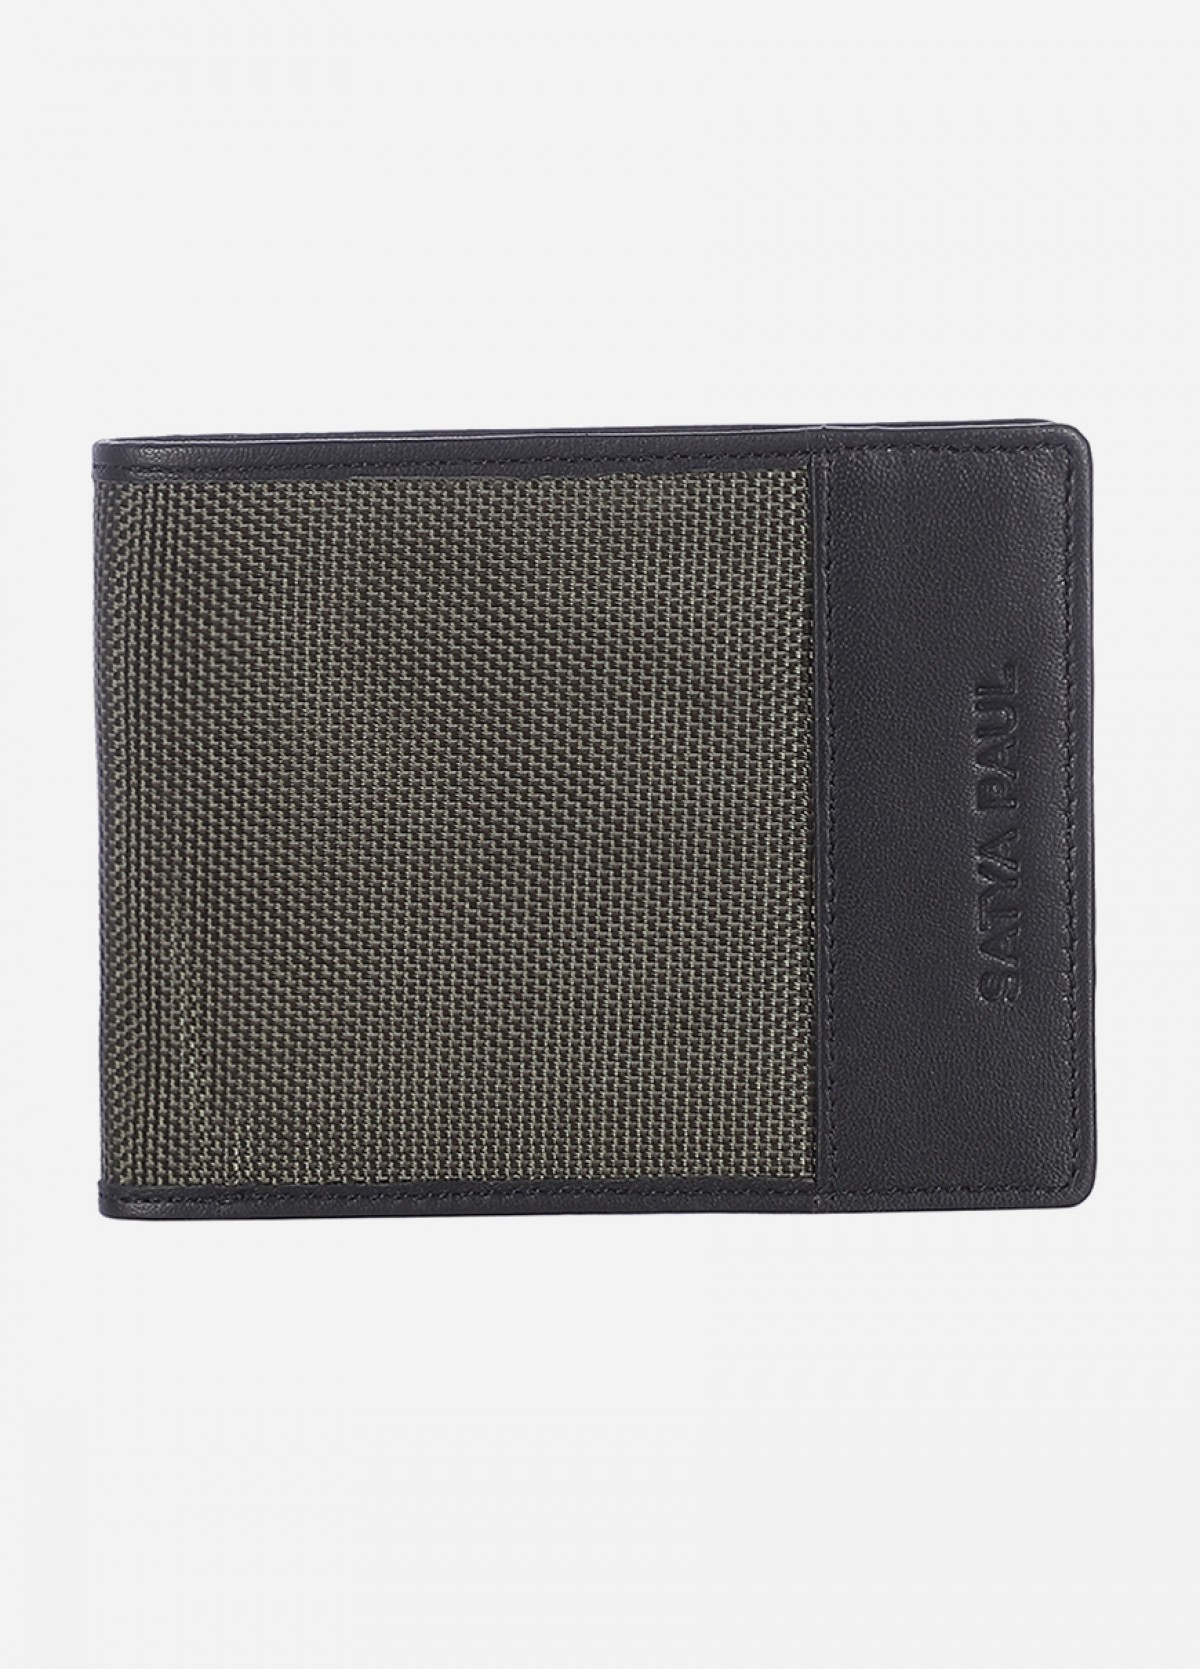 Him & The City Men's Bi Fold Wallet With Id Flap Olive